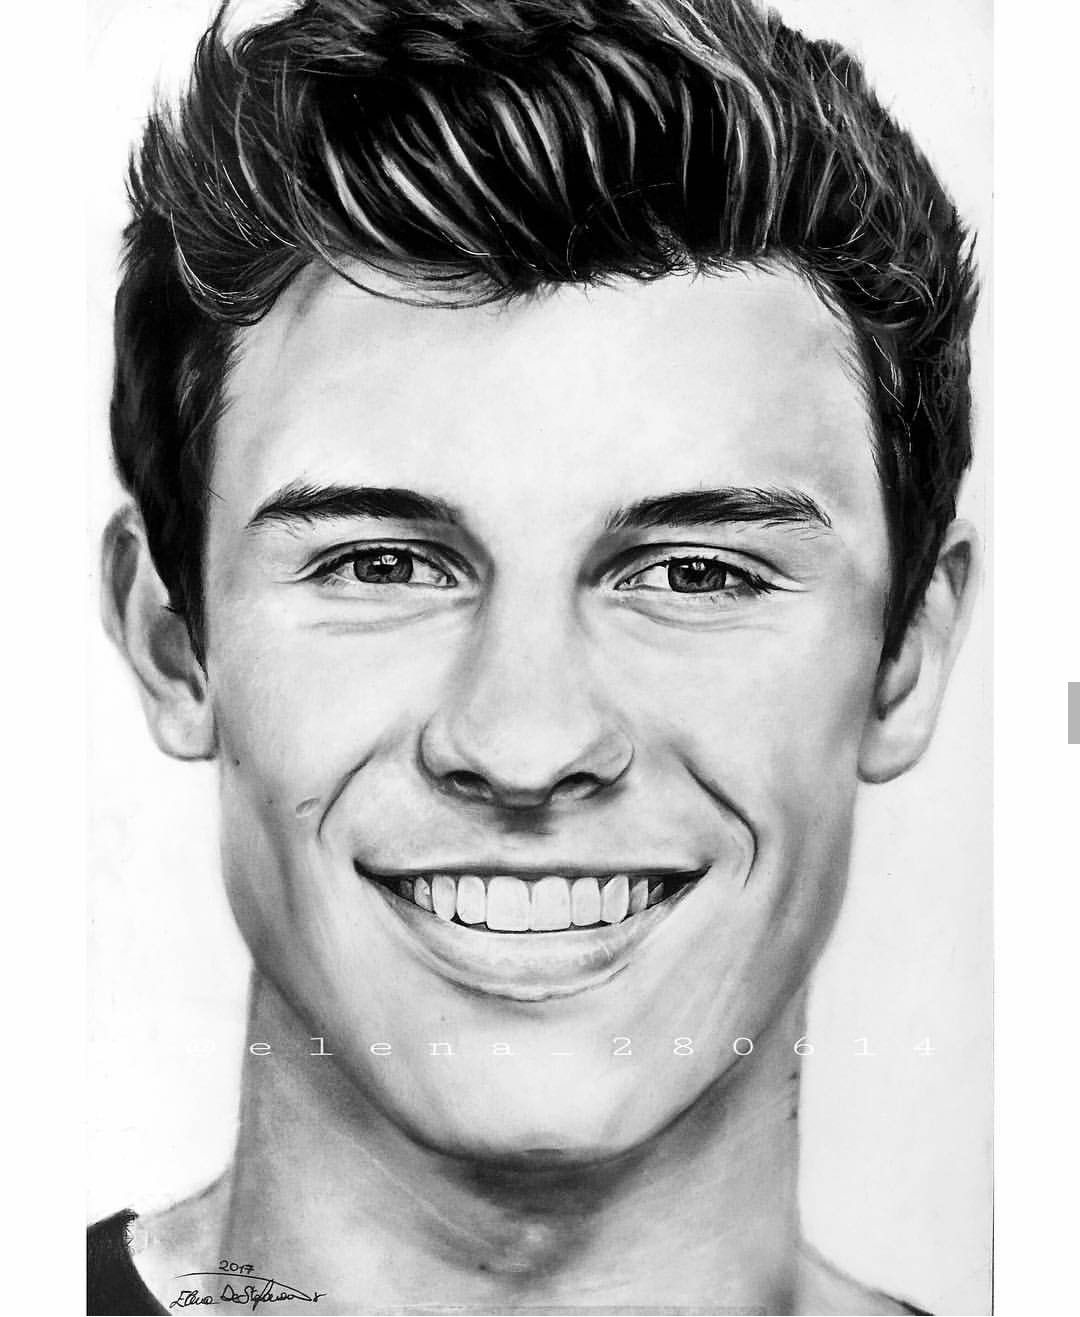 Its the best drawing ive ever seen of shawn ❤